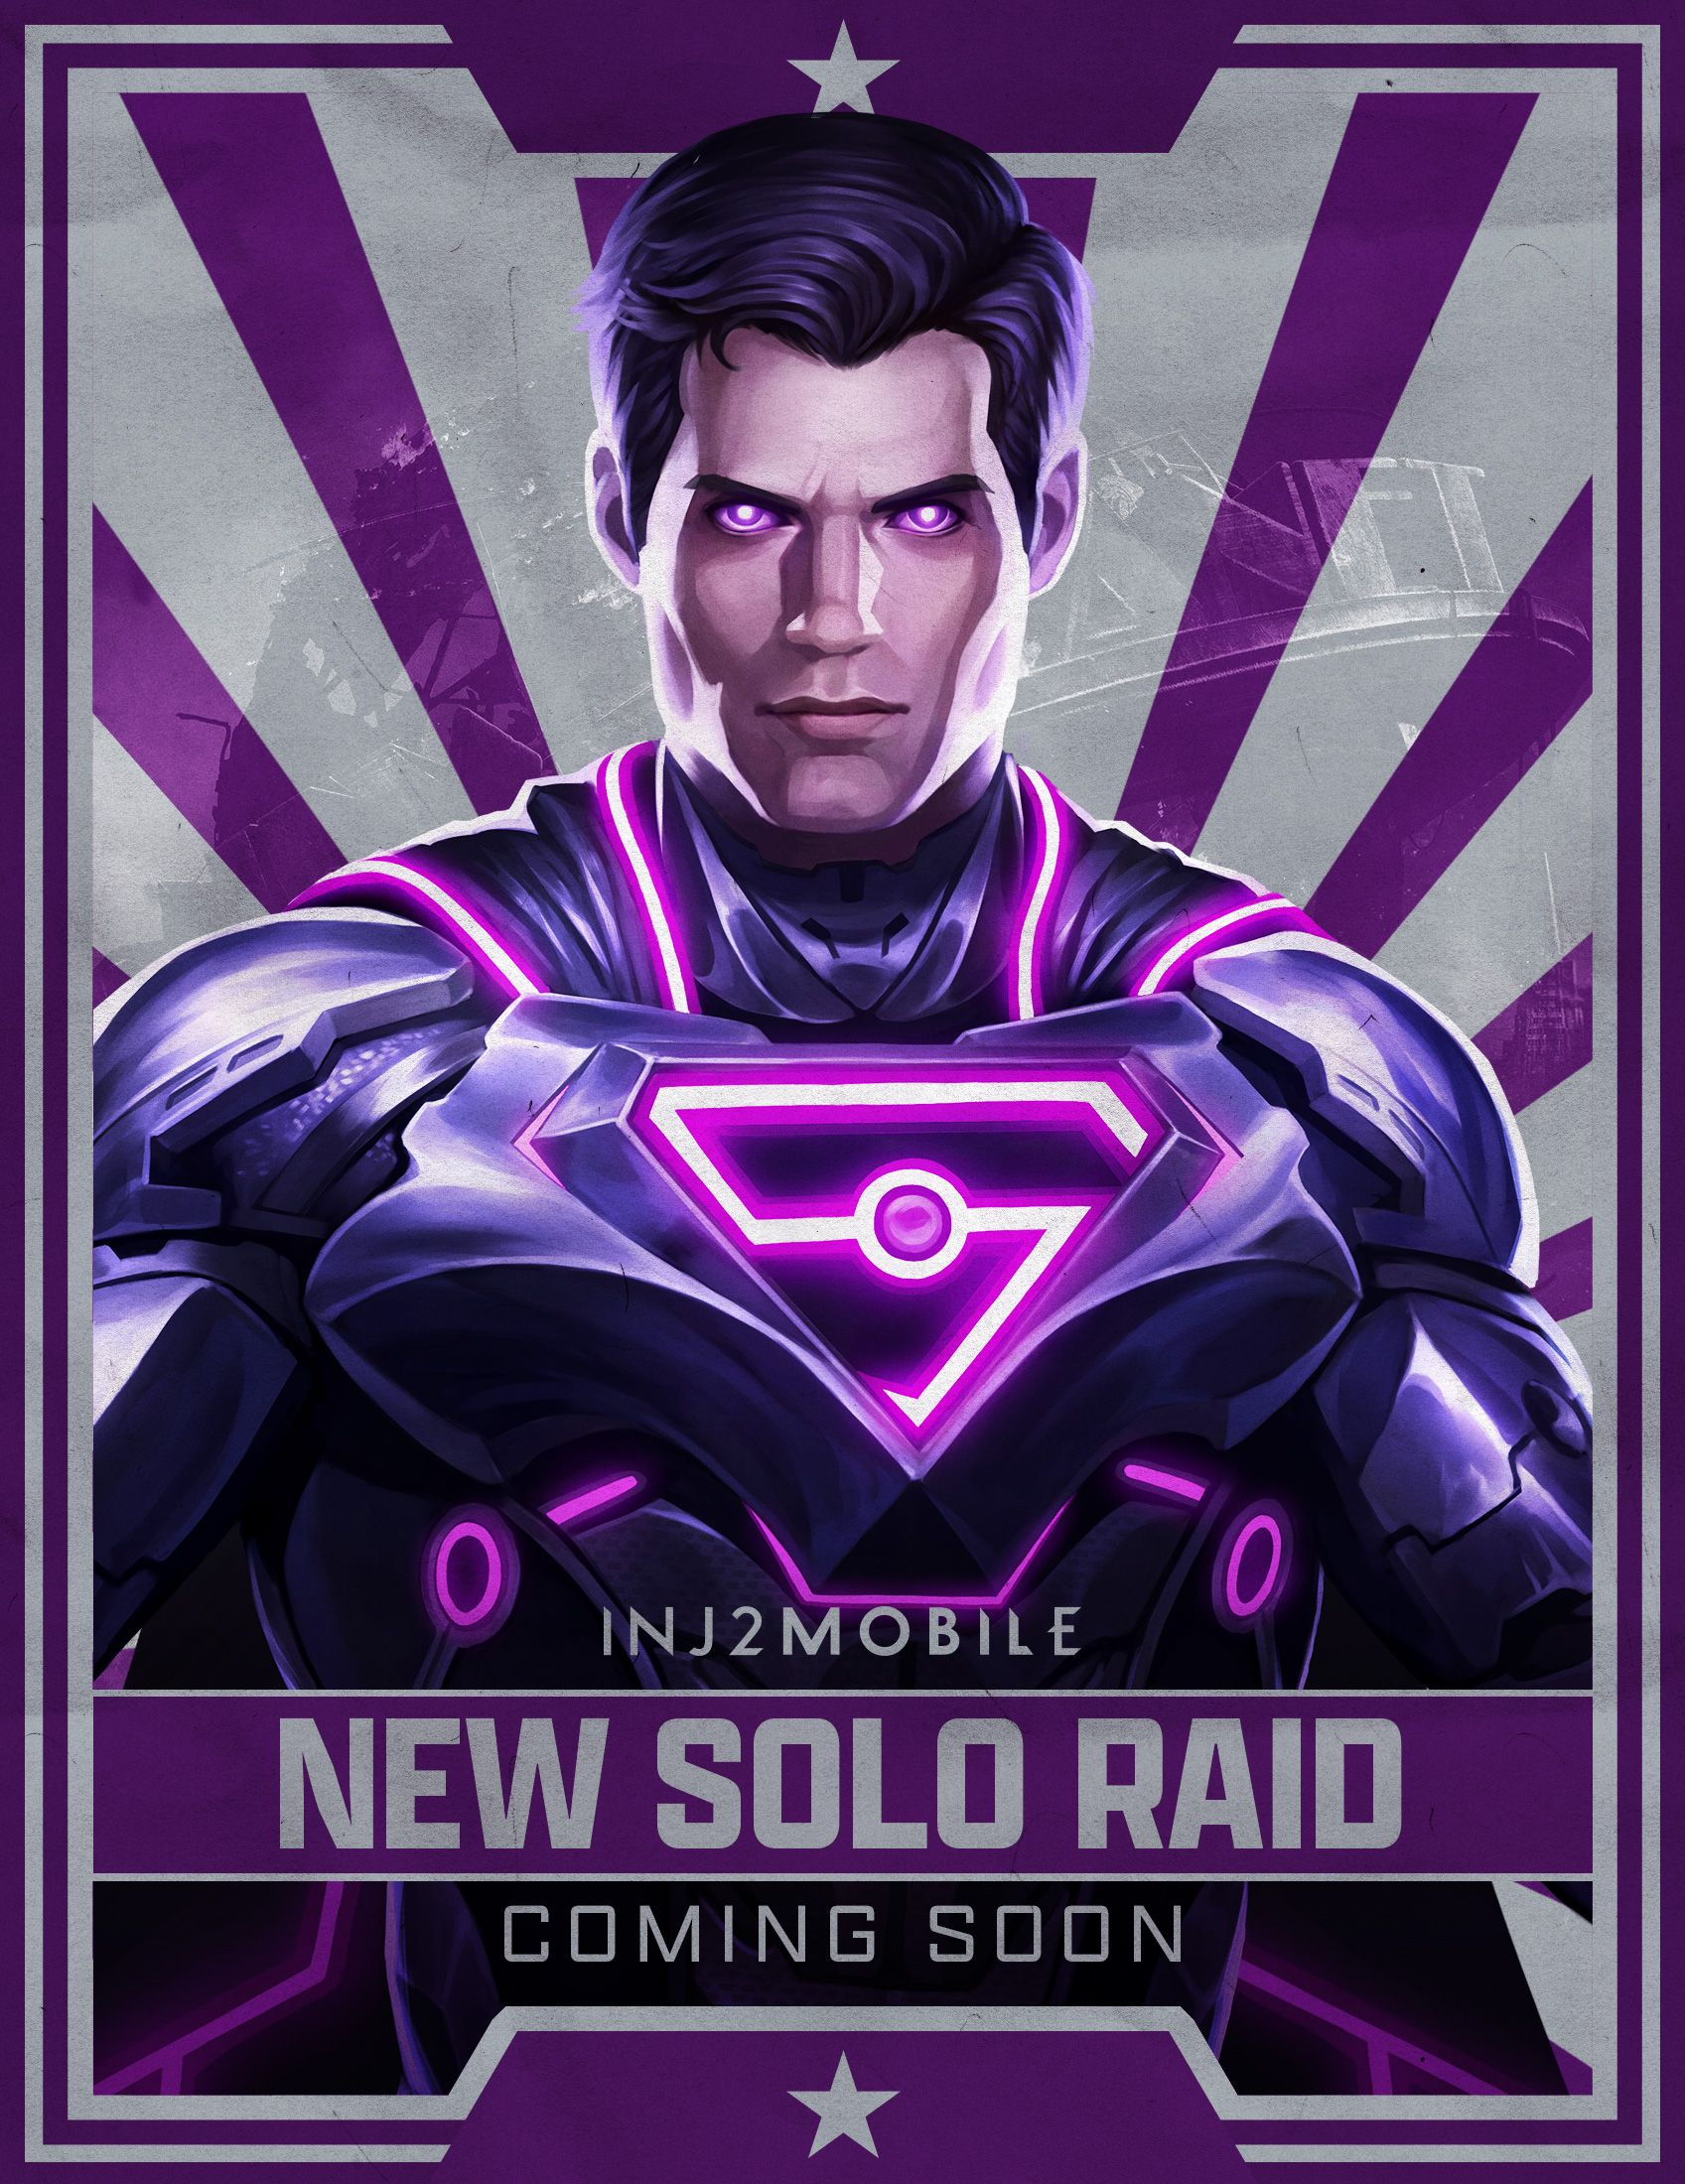 Rise Of Krypton Solo Raid Event For Injustice 2 Mobile Game In 2021 Injustice 2 Injustice Superman News